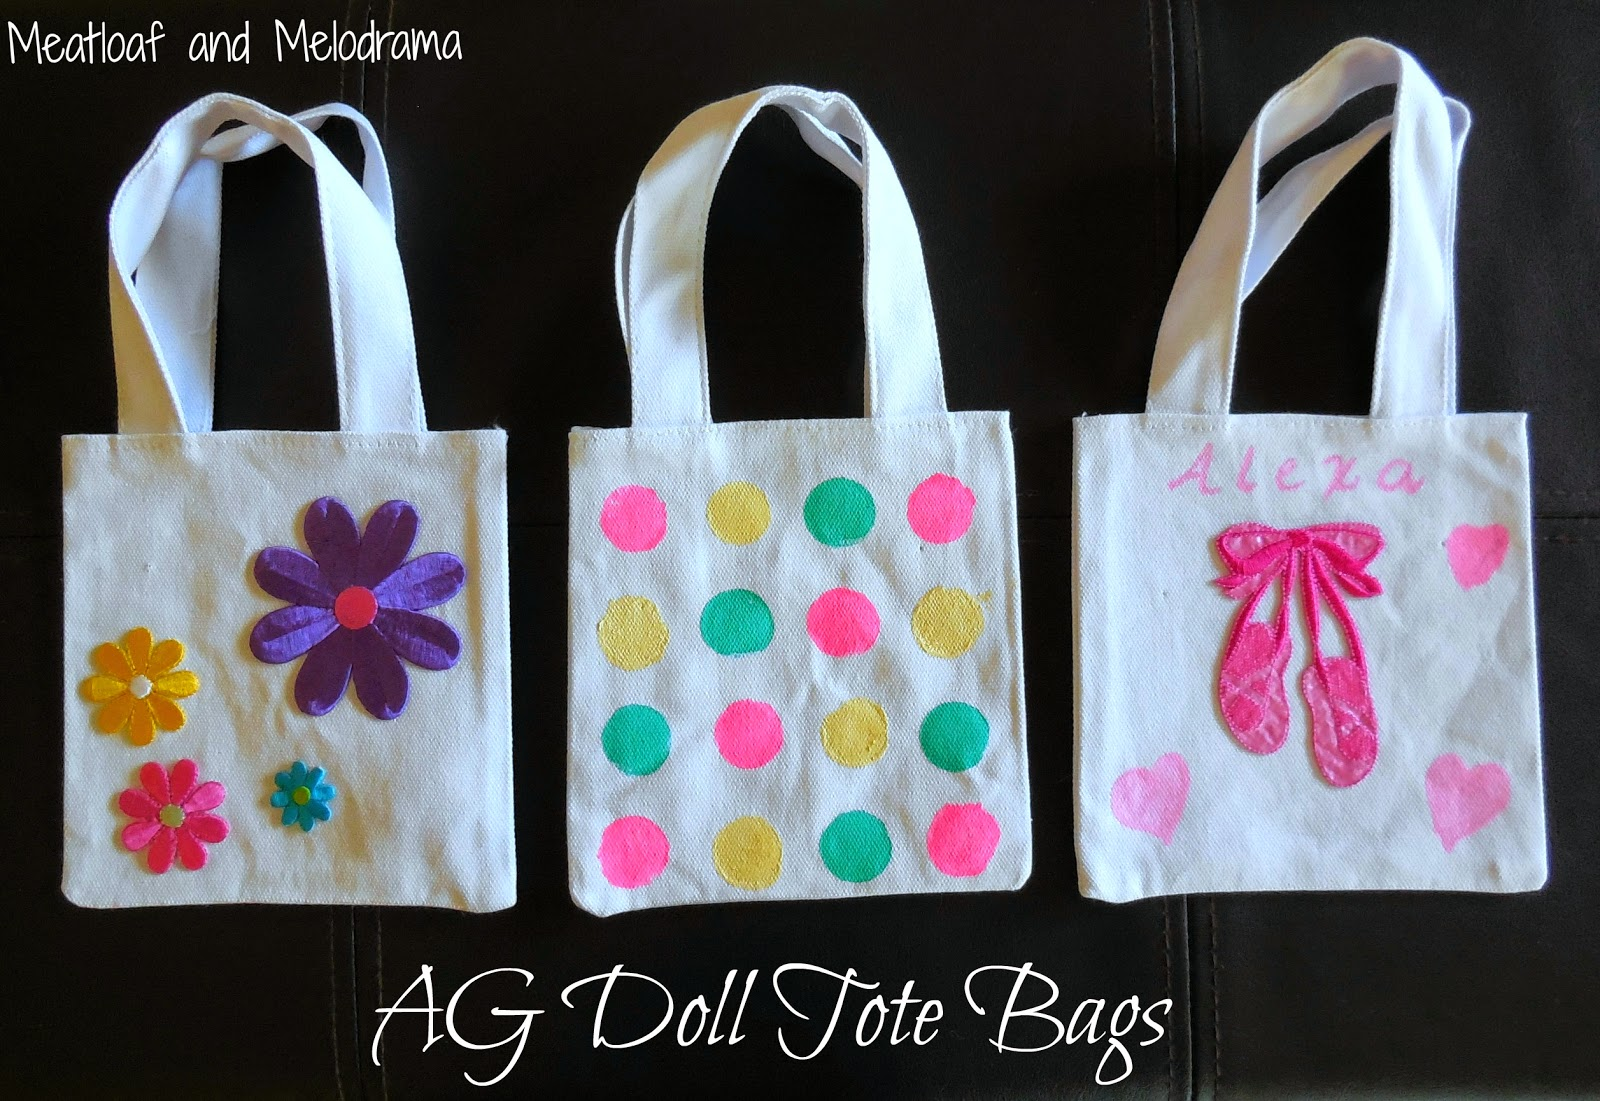 decorated tote bags for american girl dolls & American Girl Doll Tote Bags - Meatloaf and Melodrama